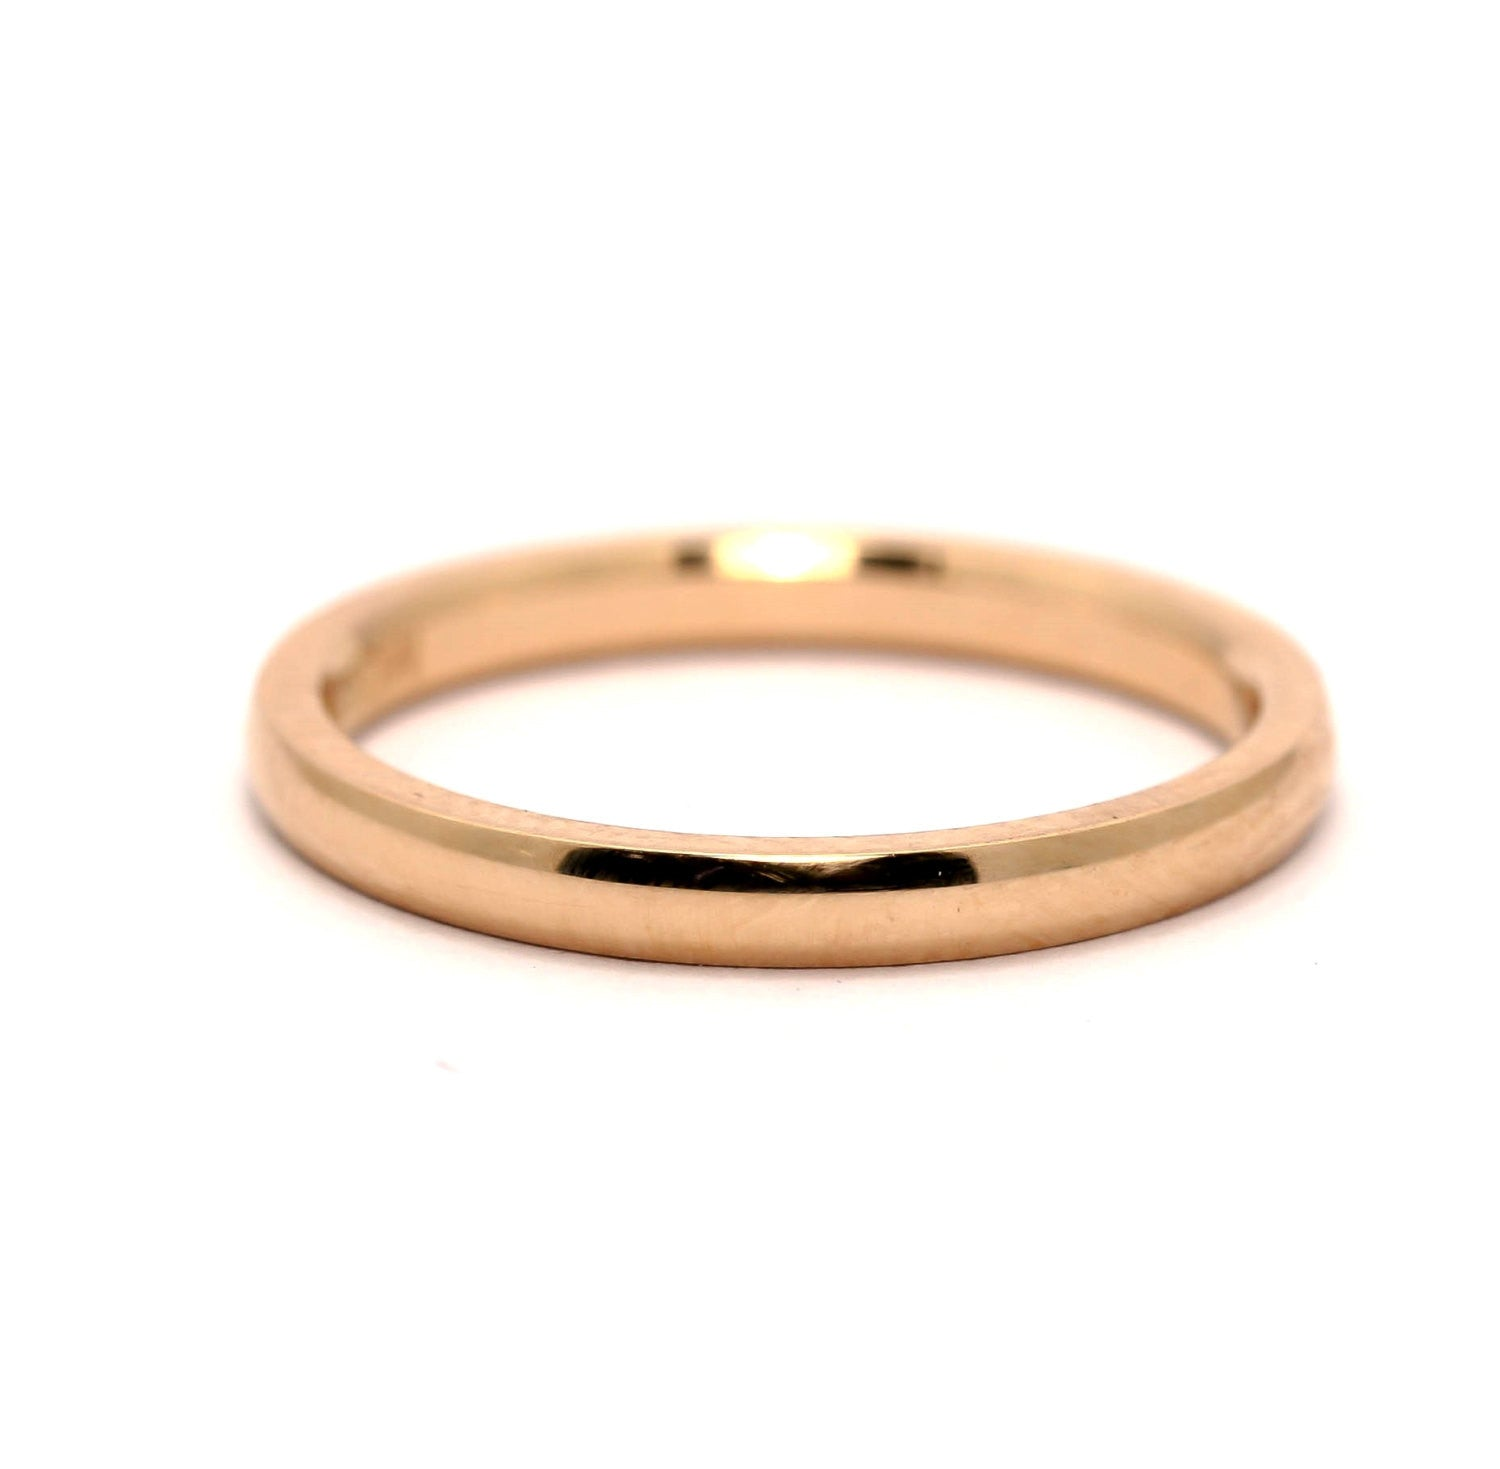 Wedding Band, Eternity, Stackable Ring in14k Rose,  White or Yellow Gold - M2015WB